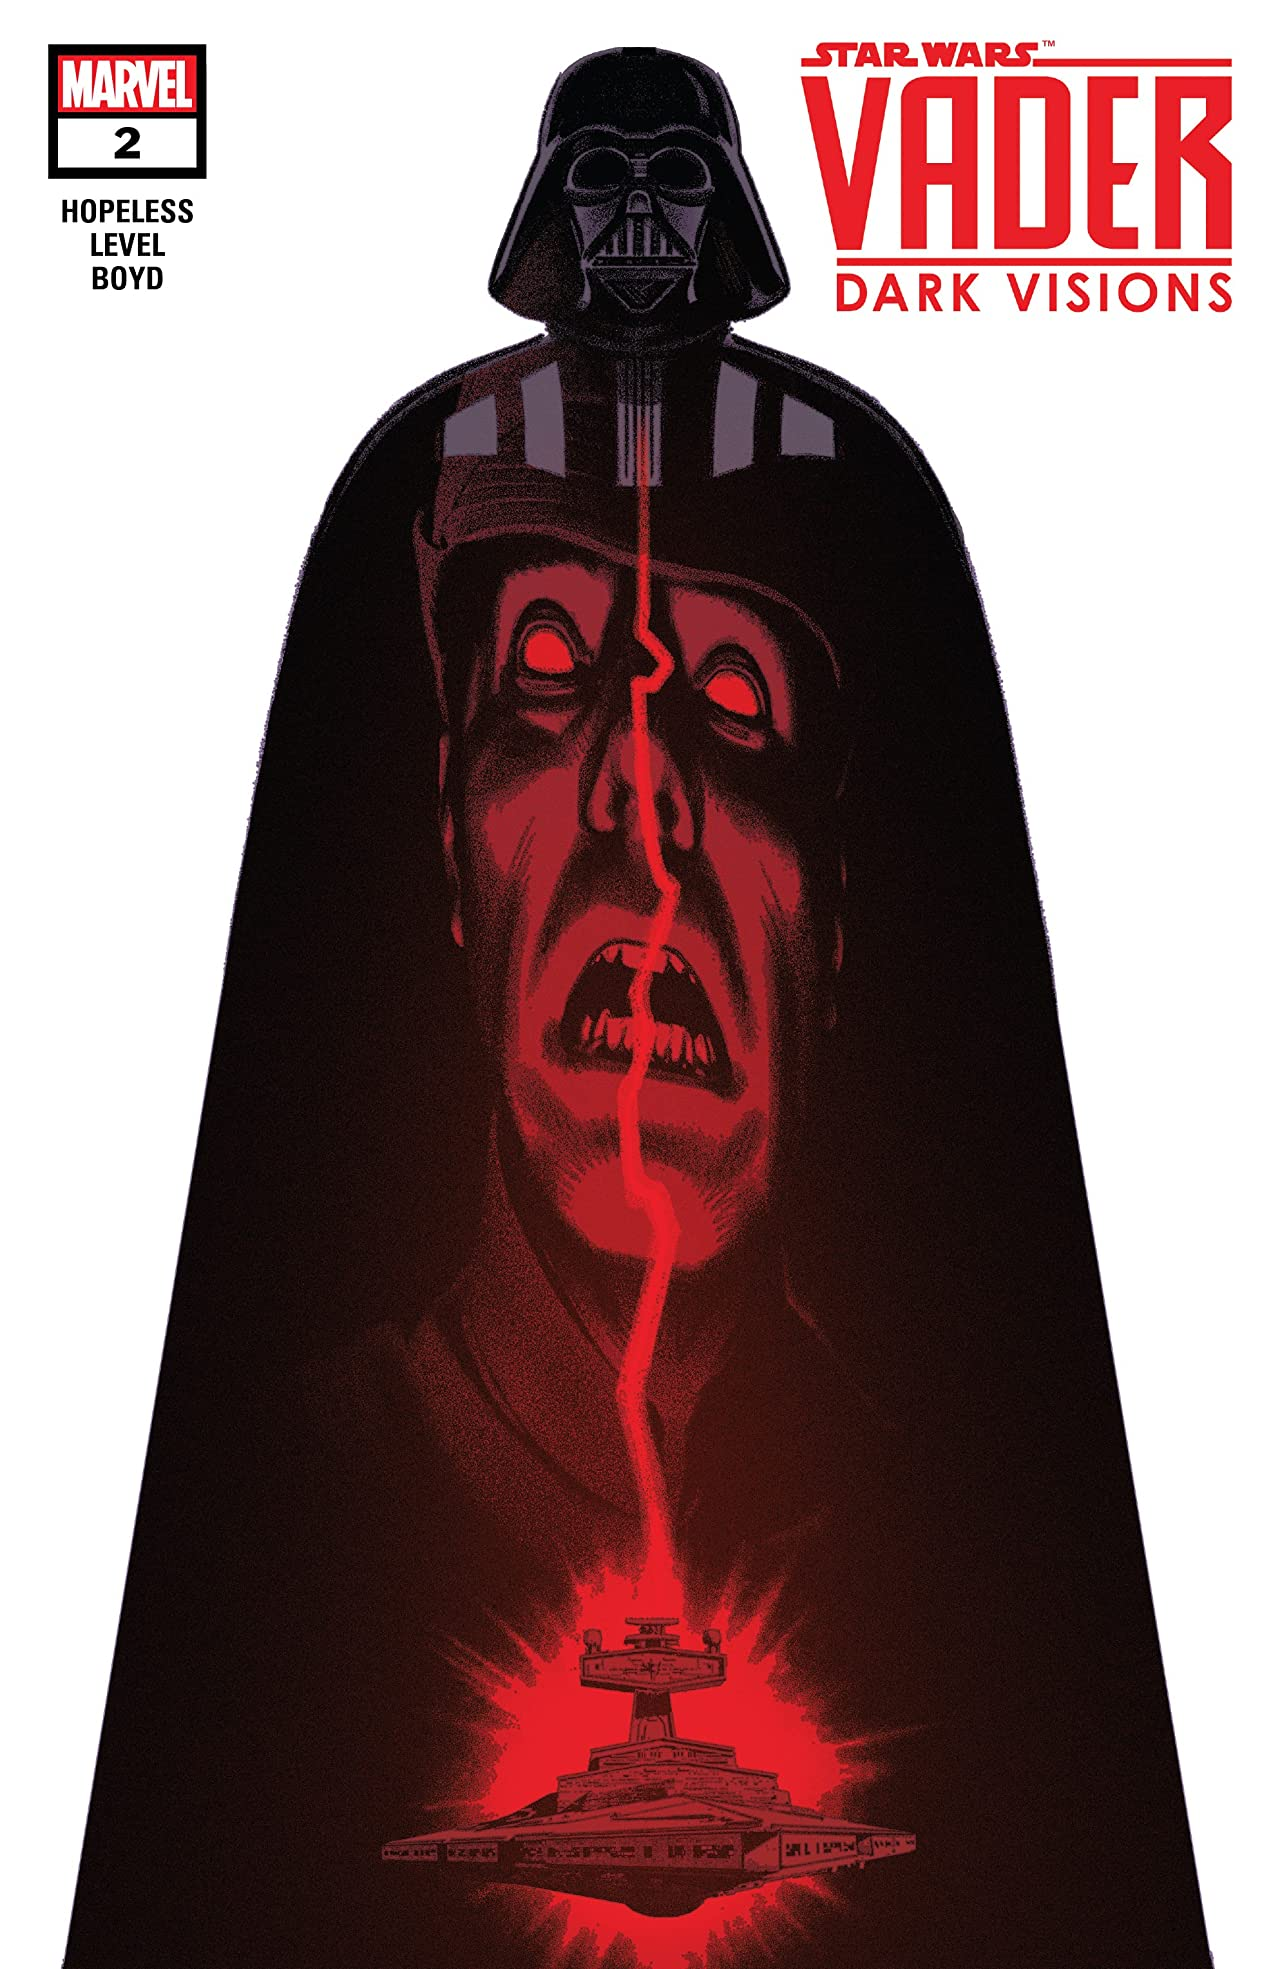 Star Wars: Vader - Dark Visions (2019) #2 (of 5)